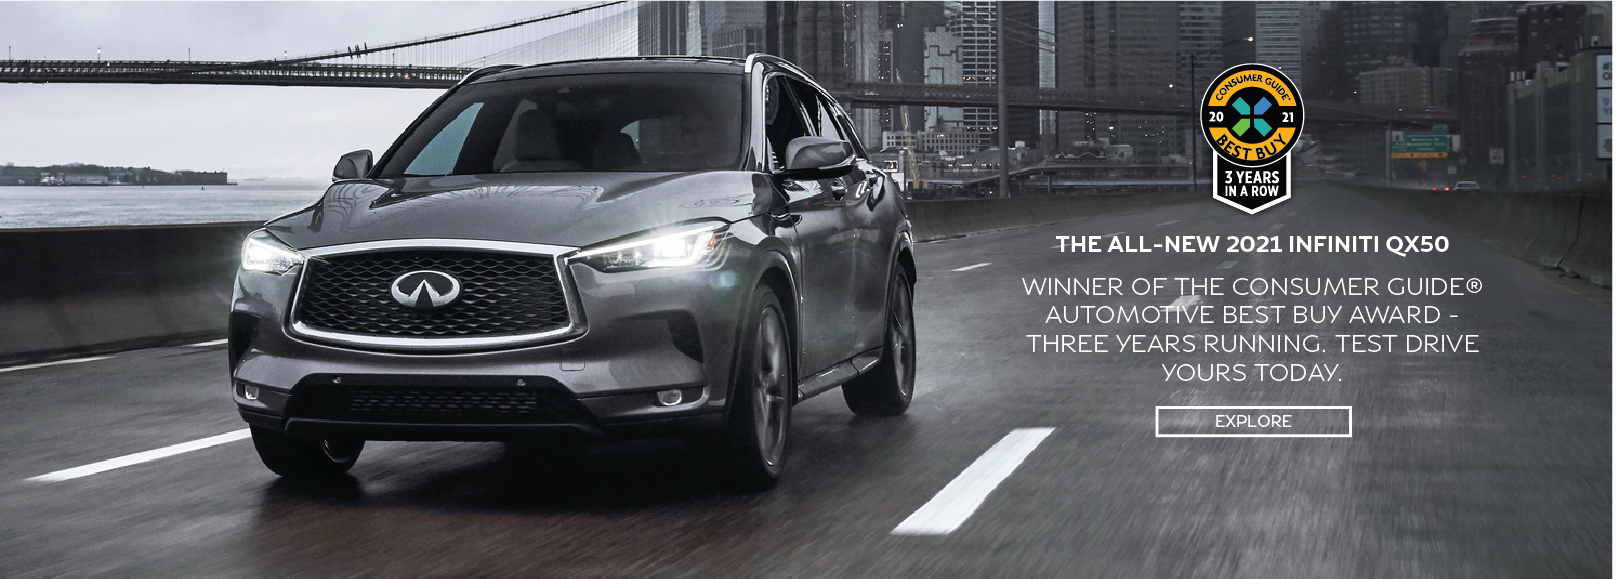 THE ALL-NEW 2021 INFINITI QX50 WINNER OF THE CONSUMER GUIDE AUTOMOTIVE BEST BUY AWARD. TEST DRIVE YOURS TODAY. CLICK TO EXPLORE.